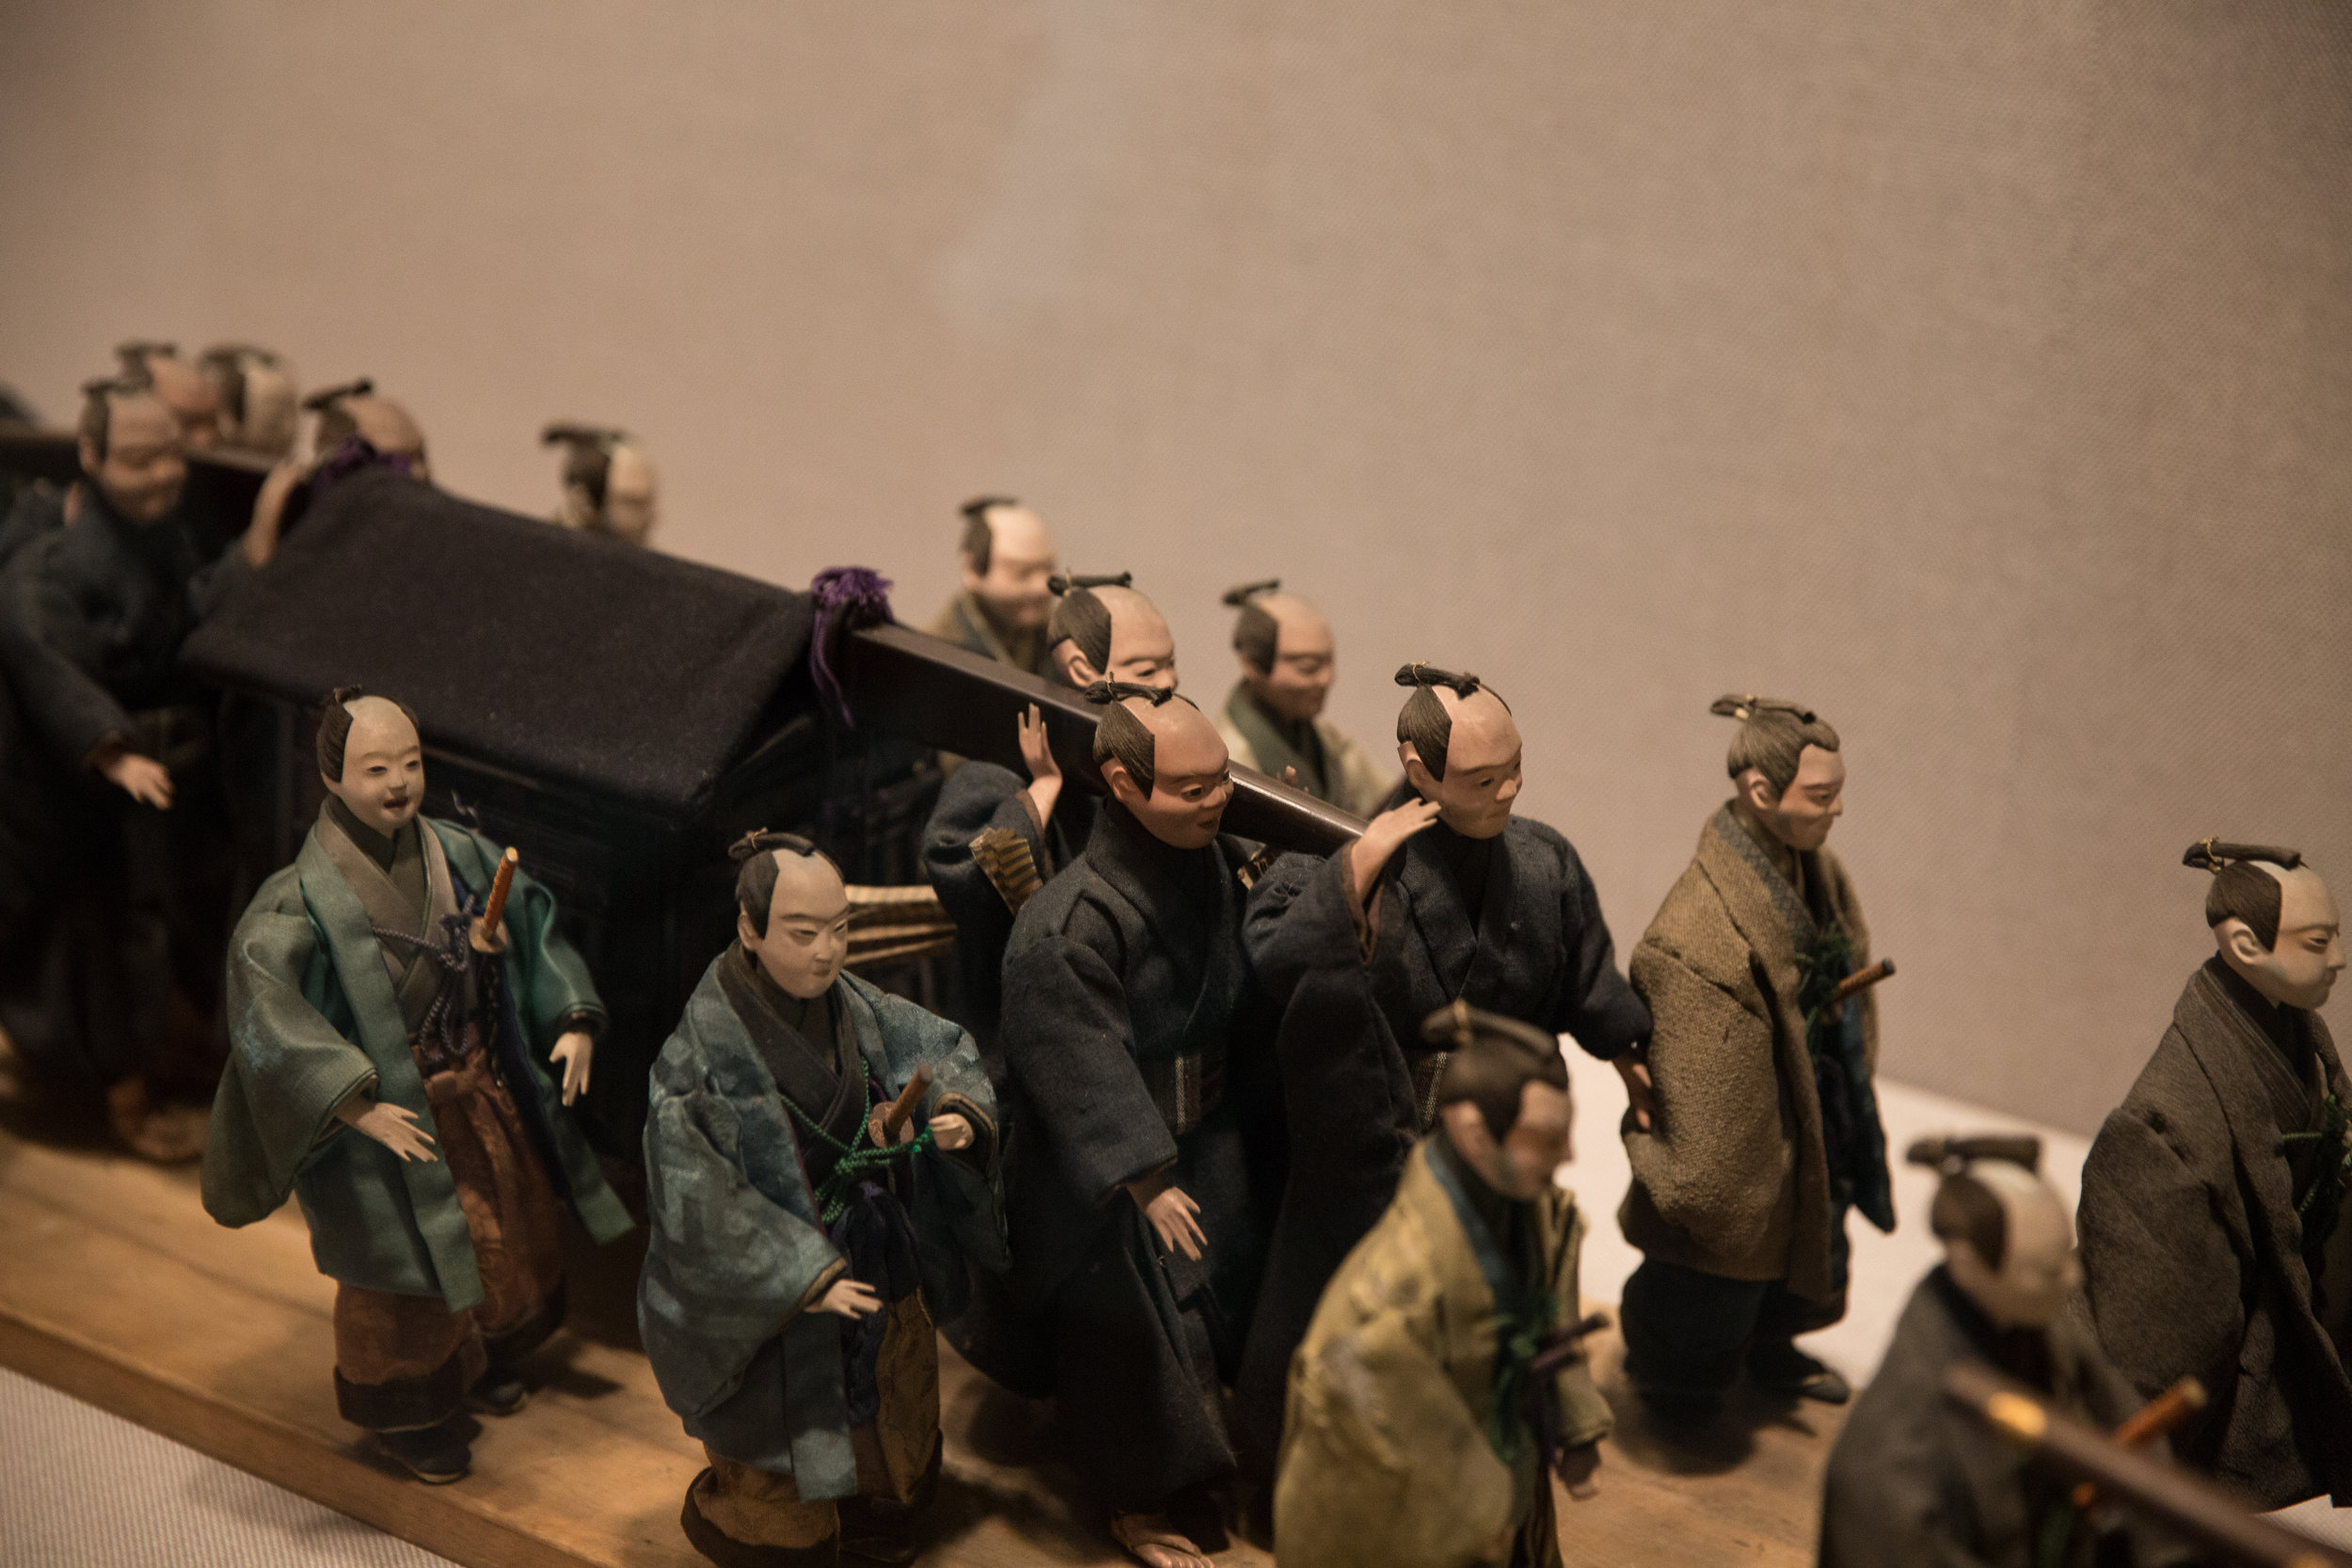 A daimyo (feudal lord) doll procession with stunning detail. These stood about 4 inches tall.